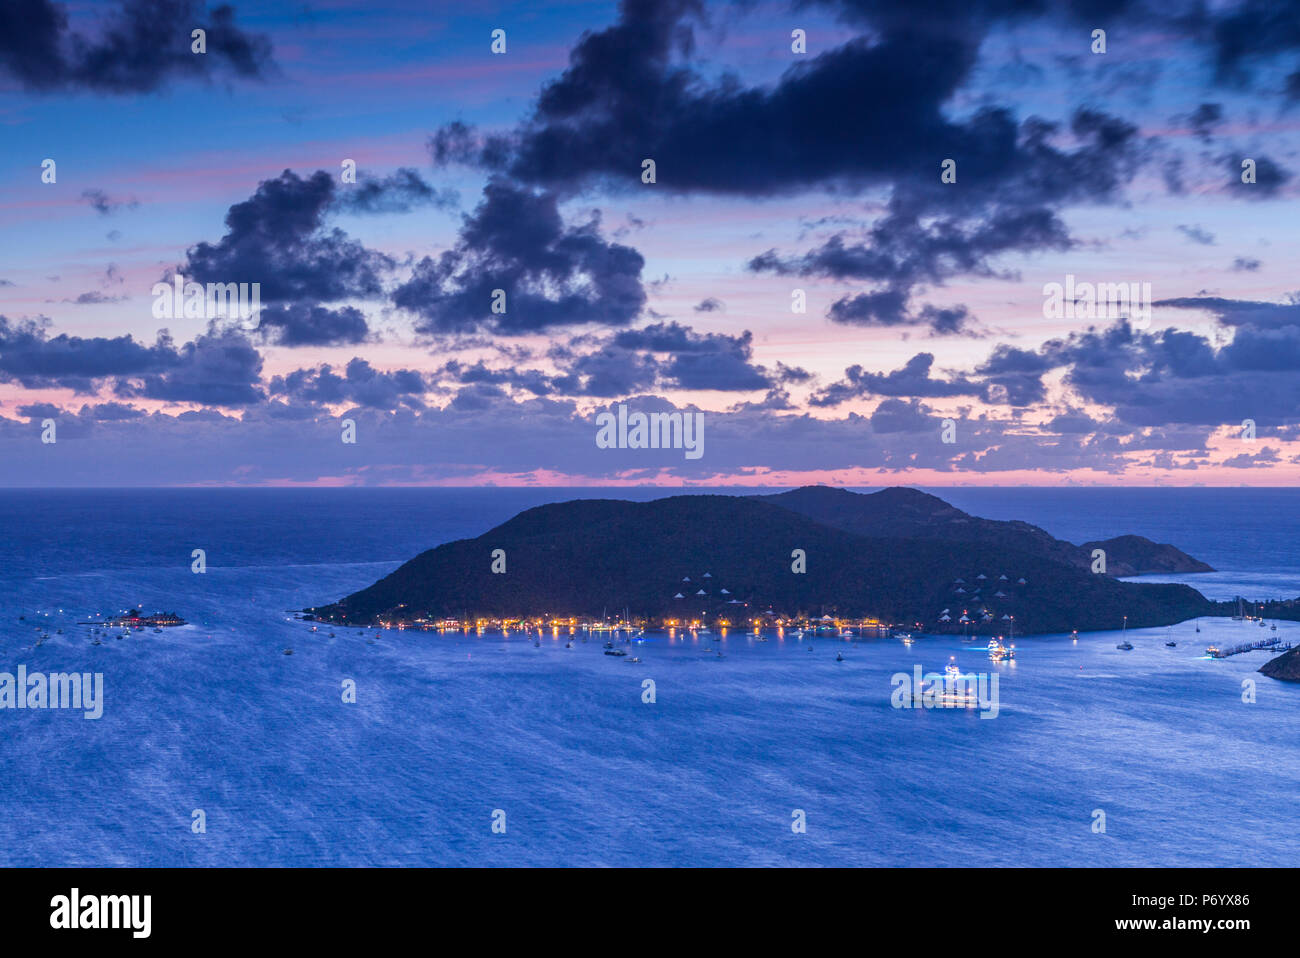 British Virgin Islands, Virgin Gorda, North Sound of North Sound and Bitter End Yacht Club from Fanny Hill, dawn - Stock Image